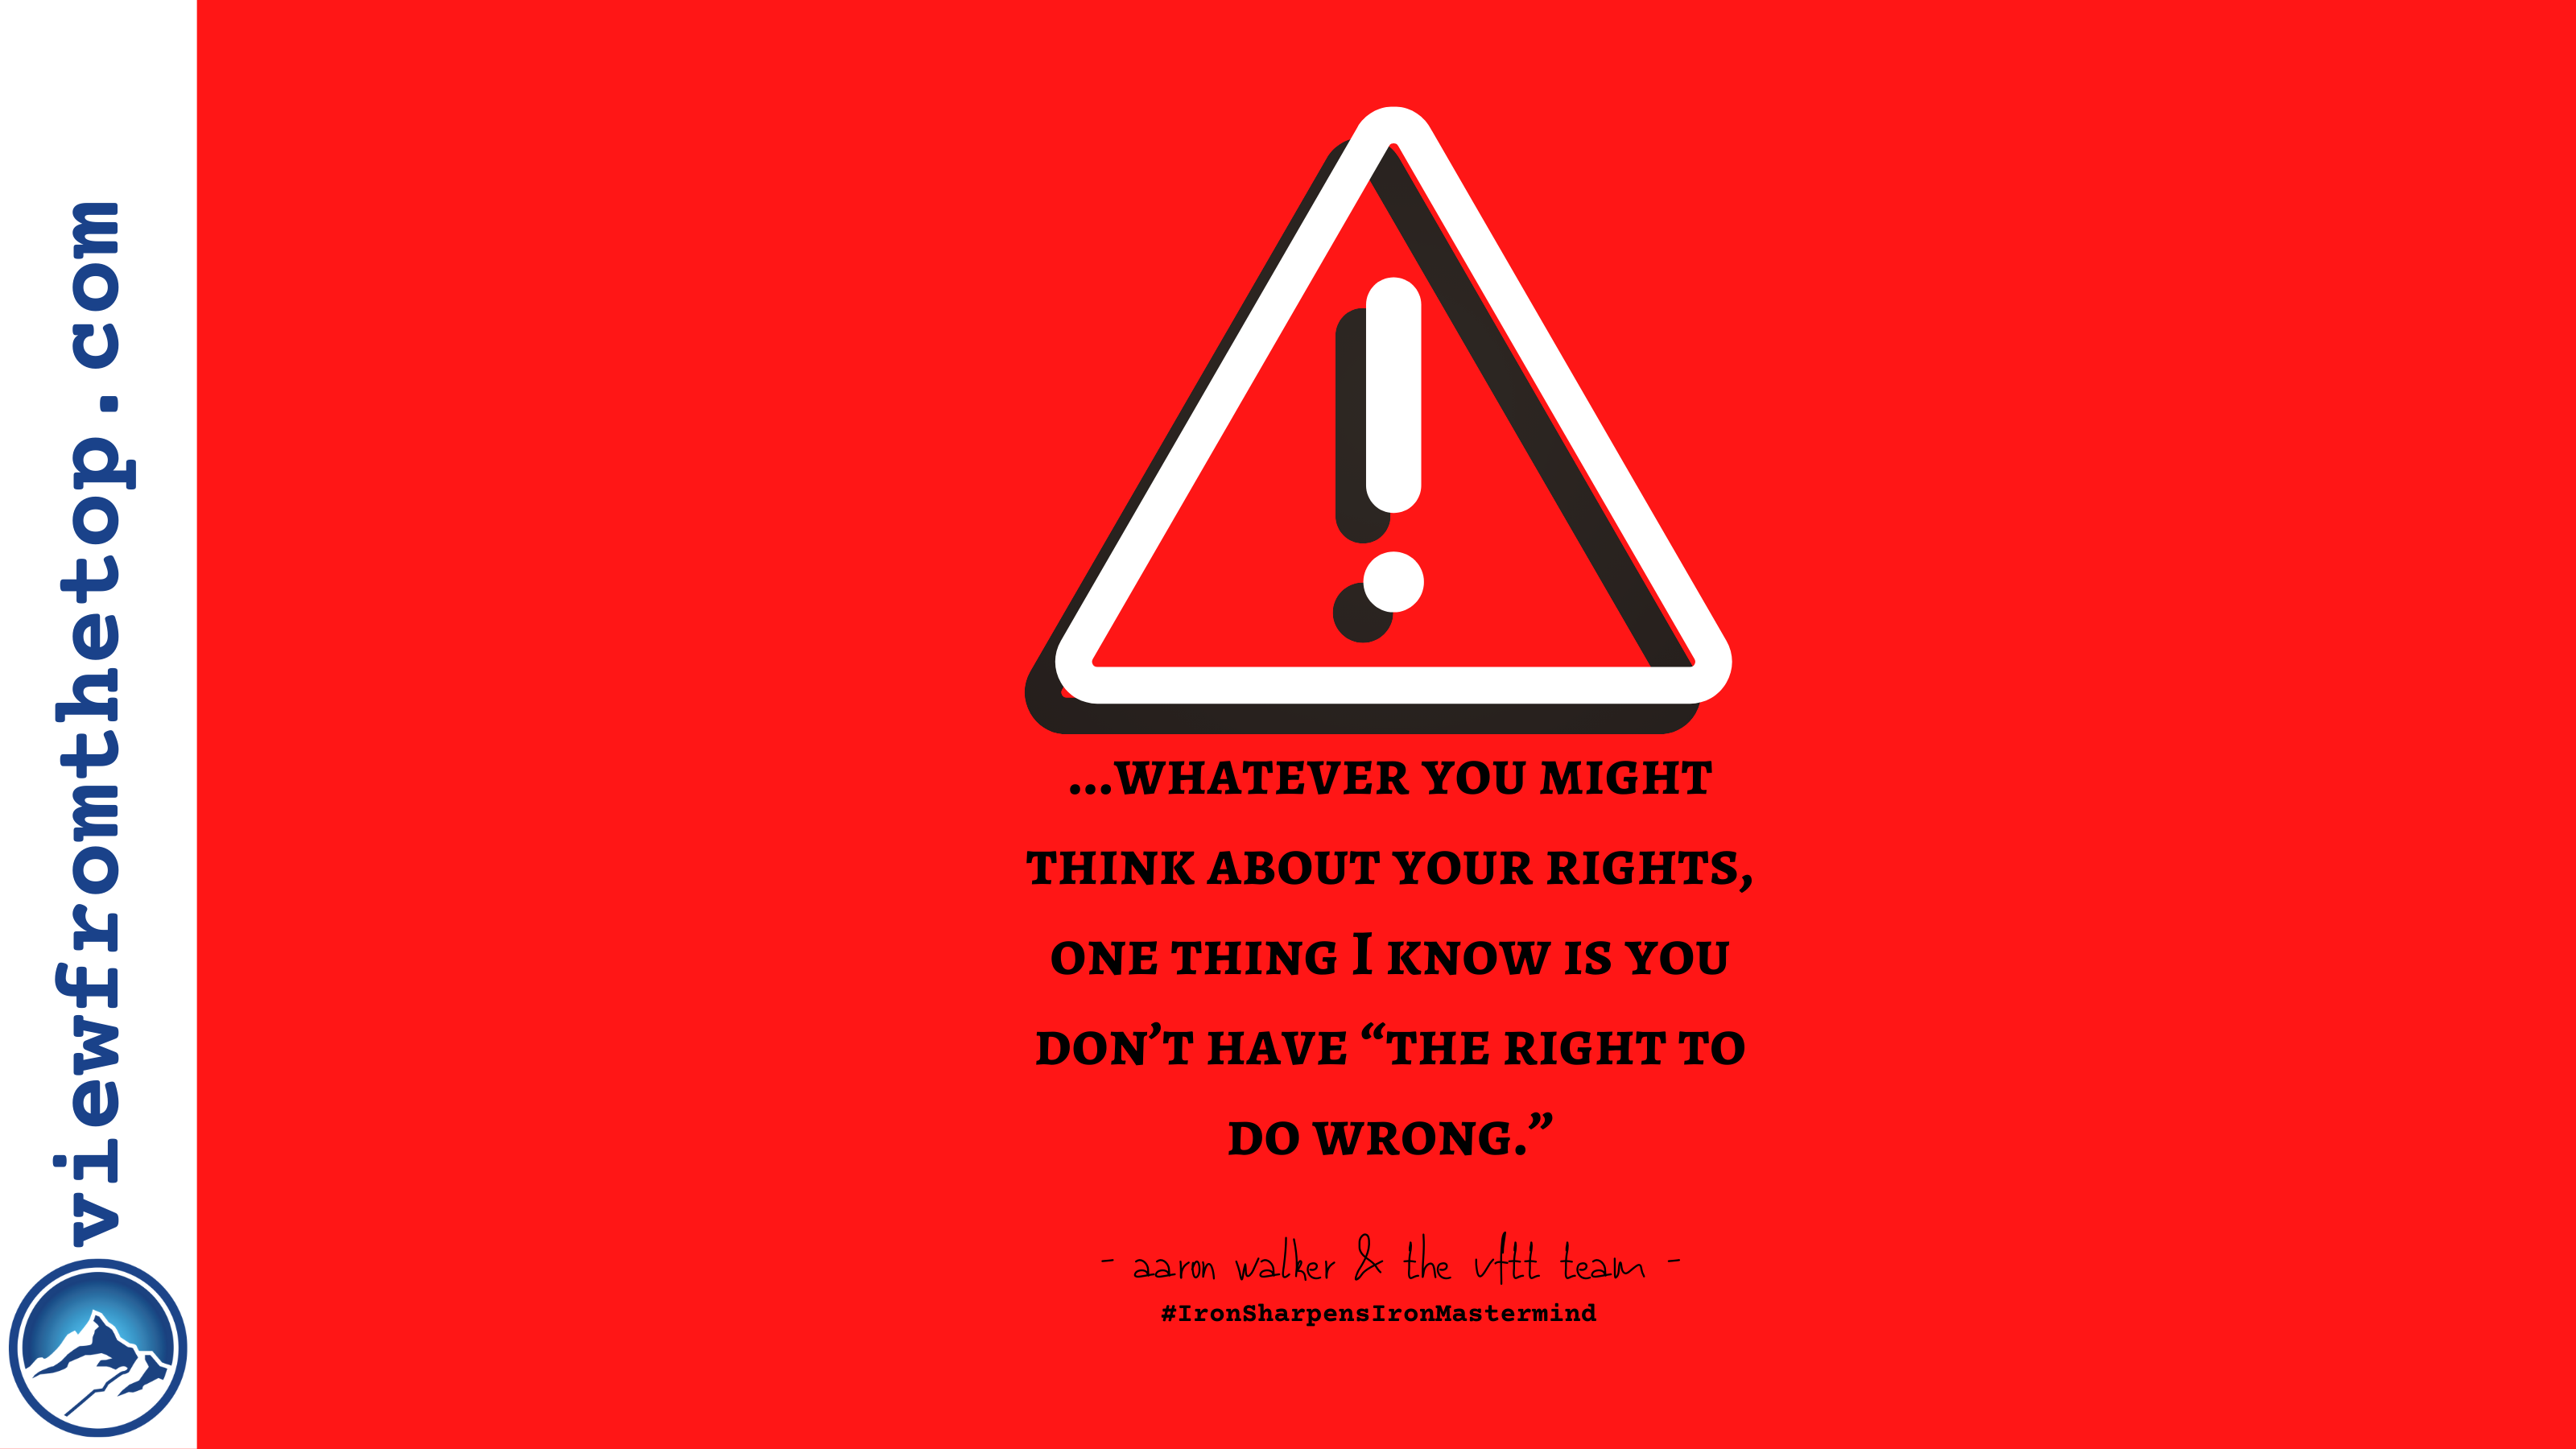 """whatever you might think about your rights, one thing I know is you don't have """"the right to do wrong."""" (1)"""